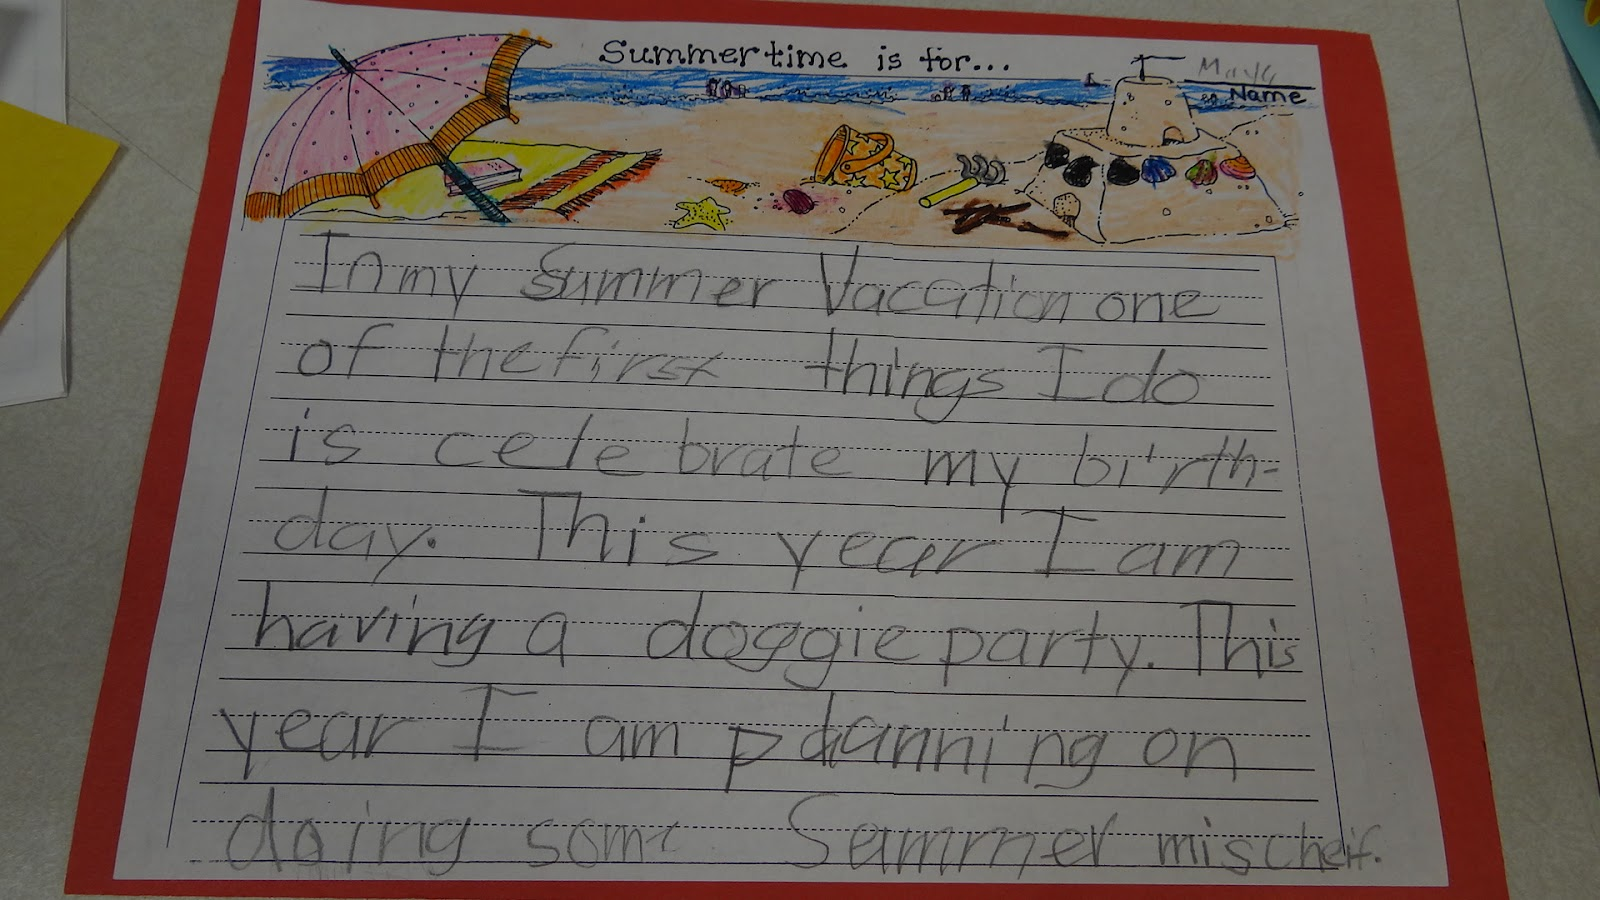 summer vacation 4 essay 500 words essay for kids on how i spent my summer vacation free summer  vacation papers, essays, and research papers school, i was asked to write an.